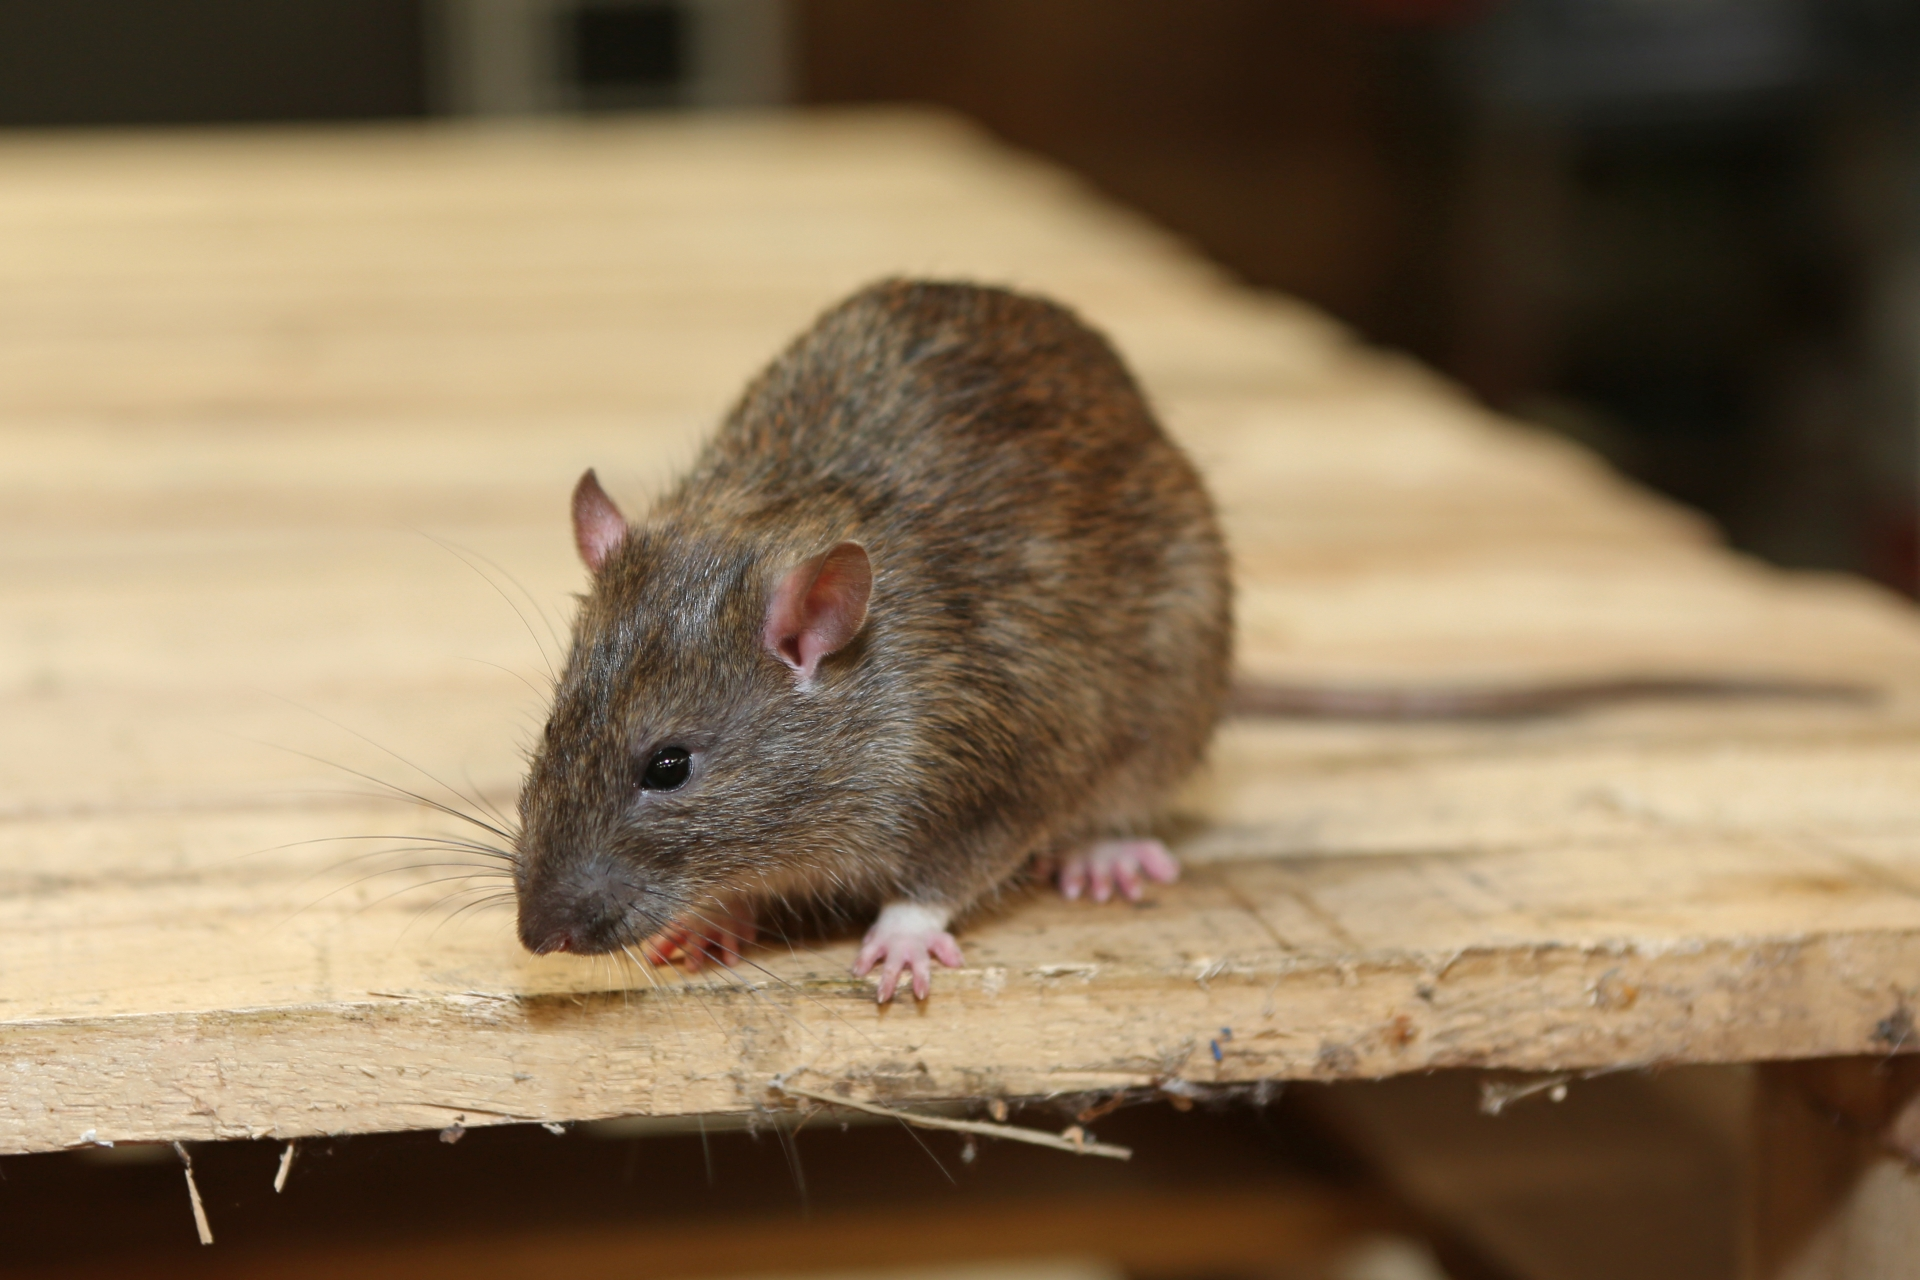 Rat Infestation, Pest Control in Harlesden, Willesden, NW10. Call Now 020 8166 9746